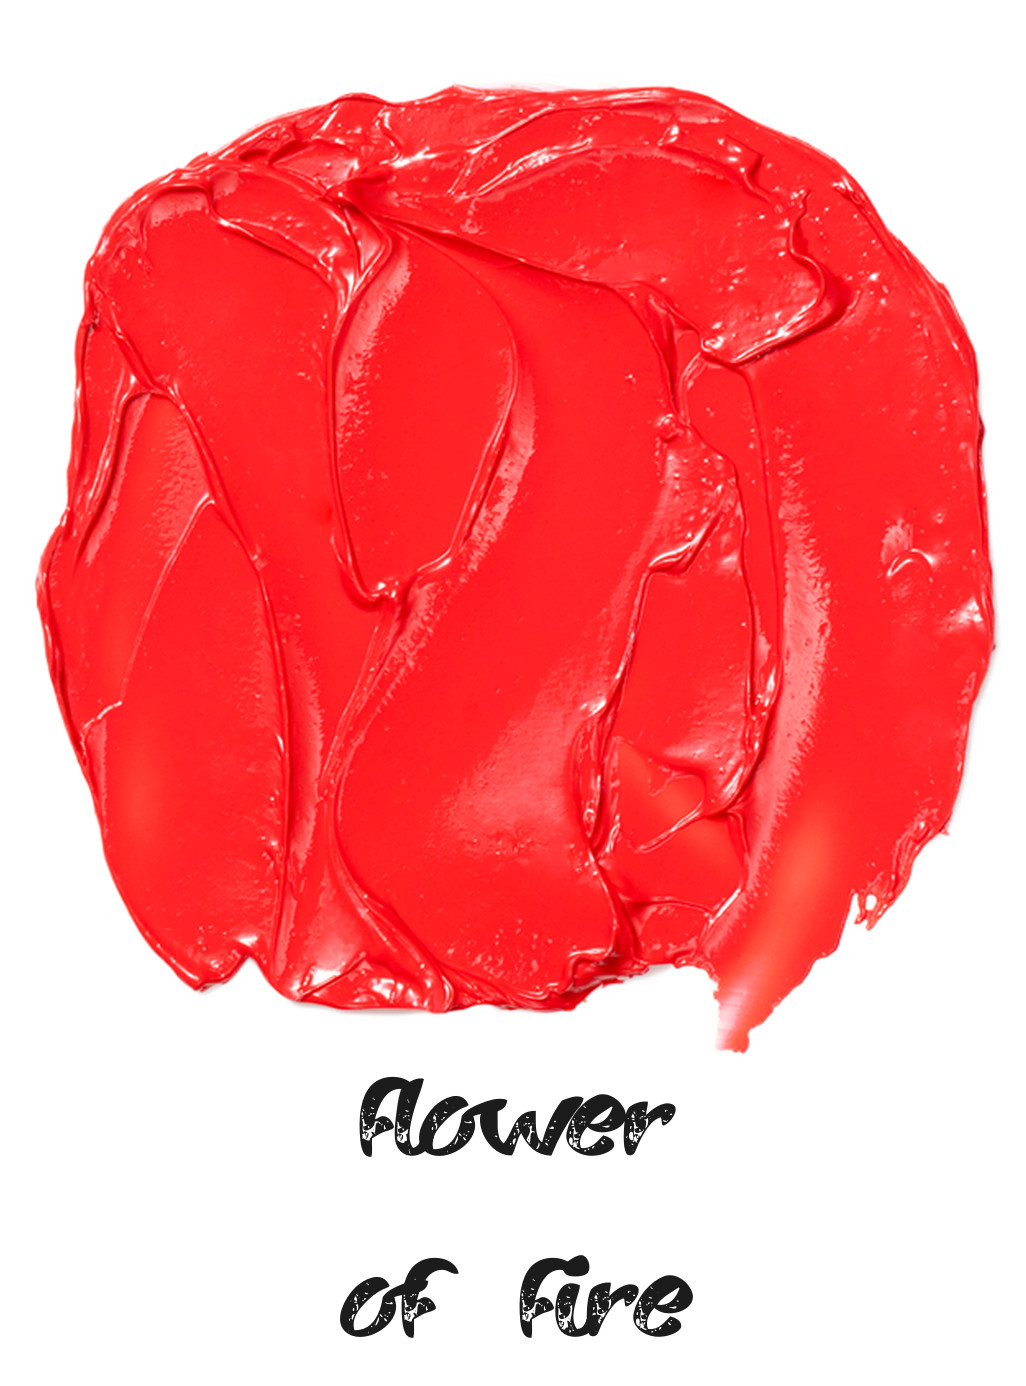 Shu Uemura x Super Mario Bros Holiday Collection 2017 Tint In Balm flower of fire